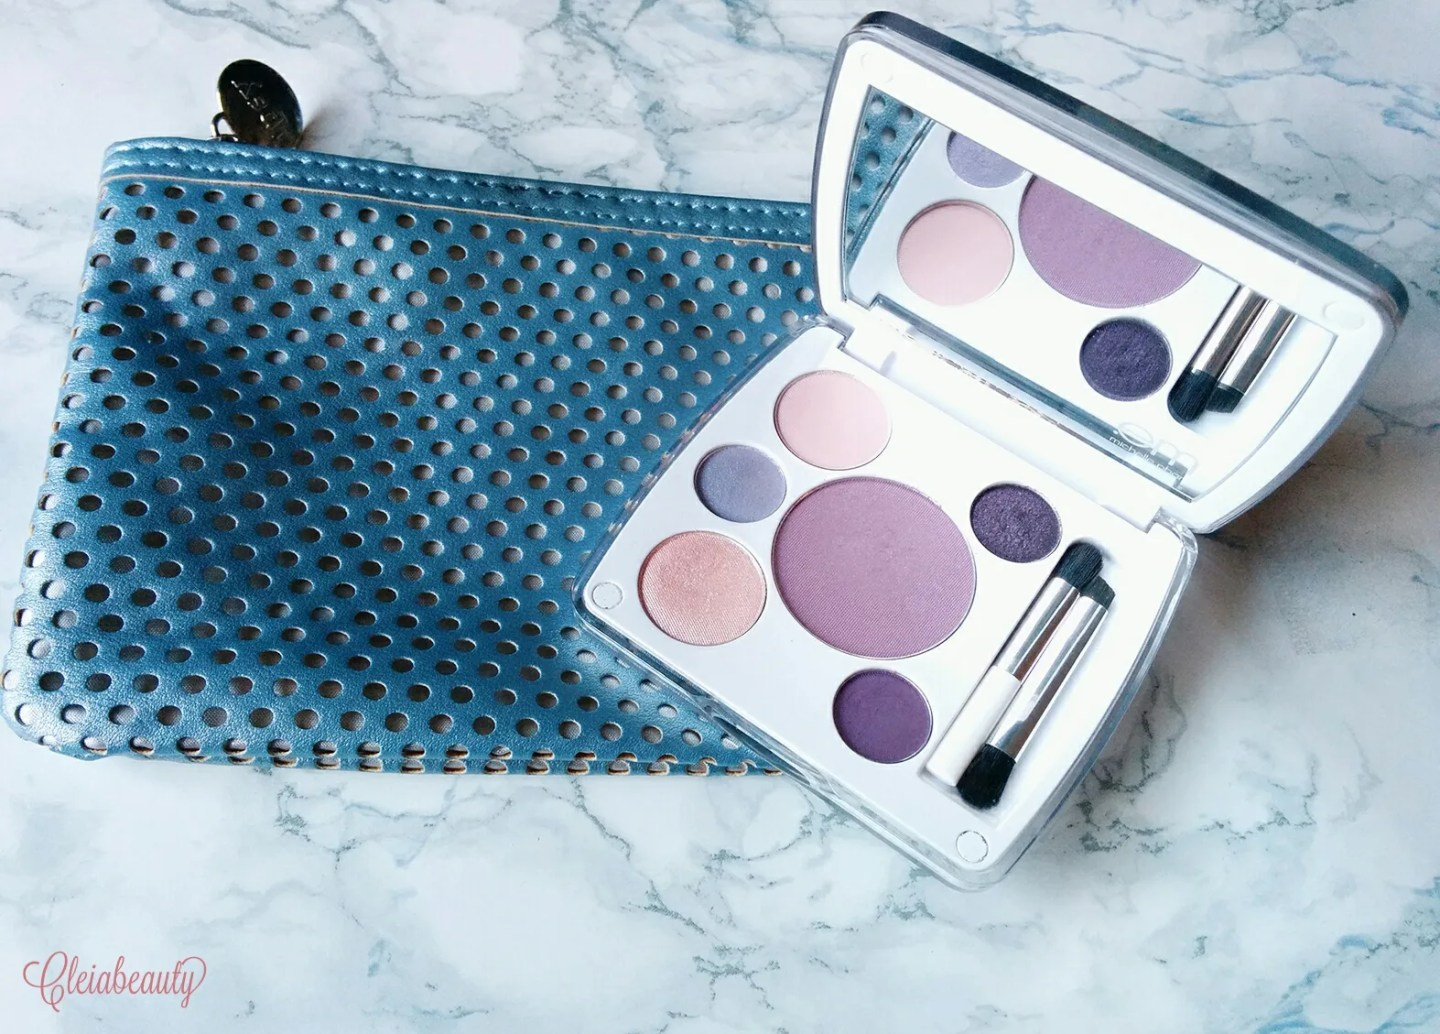 em Cosmetics Tokyo Plums Shade Play Eyeshadow Palette Review & Swatches